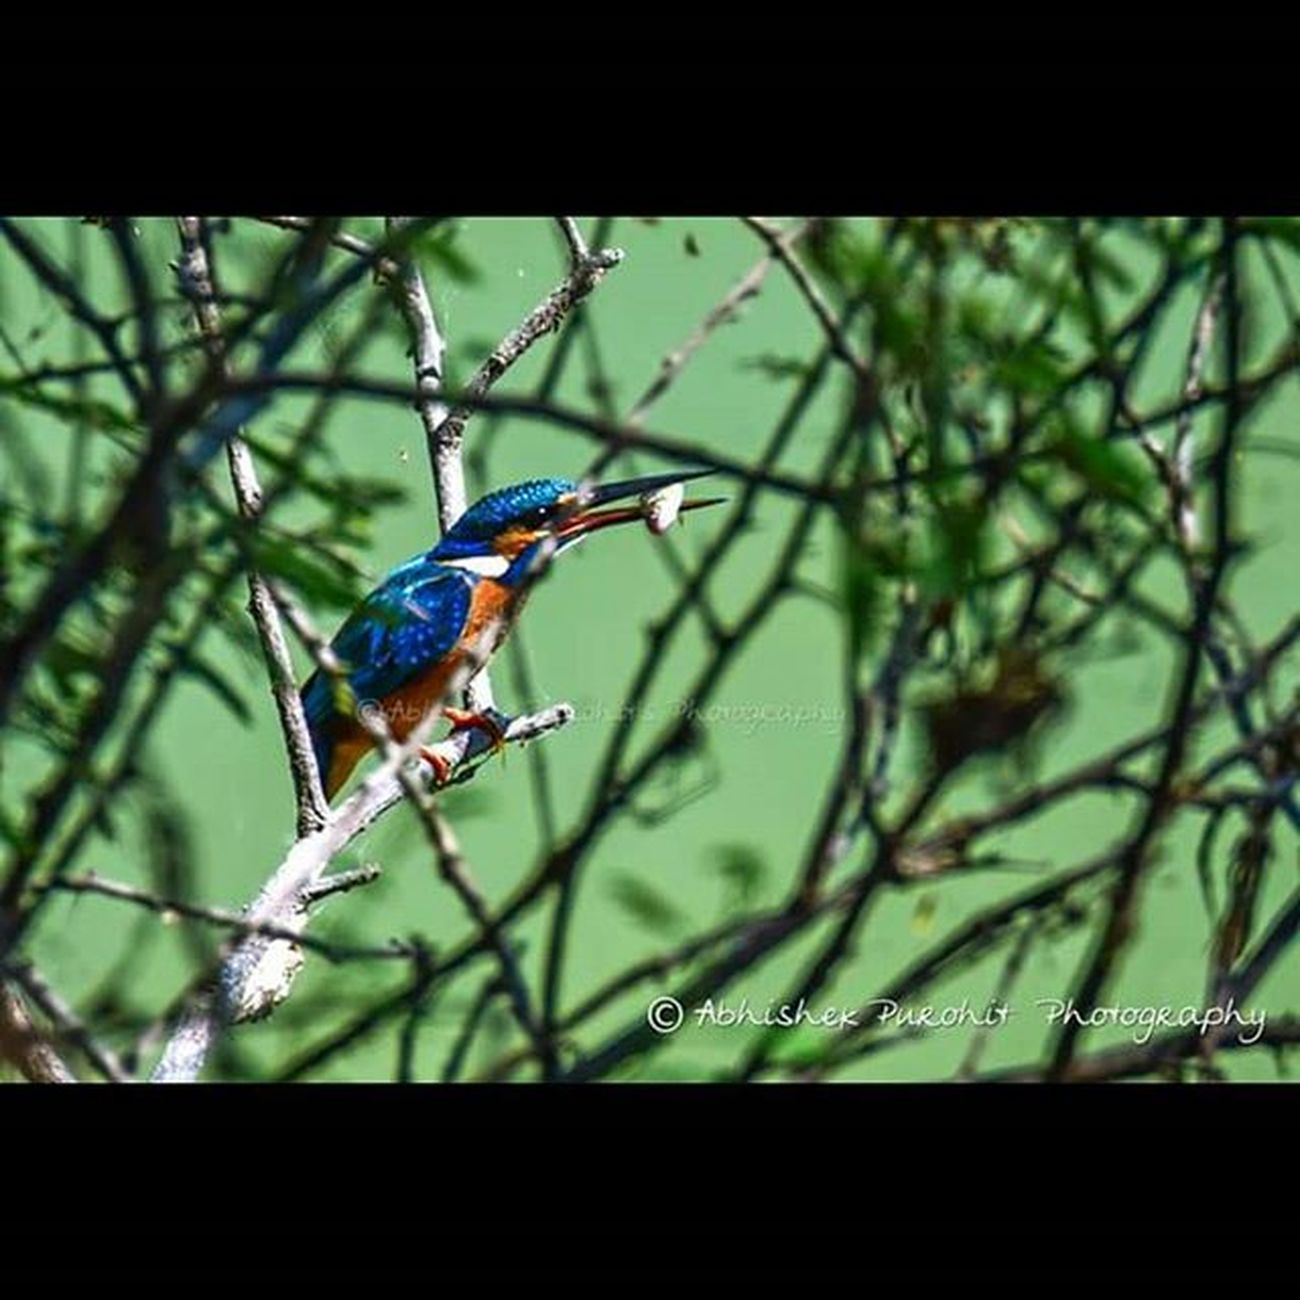 Lunchtime Fish King Jodhpur Jodhpurs Photographie  Monsoon Birwatch Bird Fishing Kingfisher Travel Catch Travel Concept Jodhpuri Knowledge Learn Learning India Indian Rajasthan Like4like Igersjodhpur Instajaipur gioneeshutterbugs instaudaipur jodhpur_shotout instam